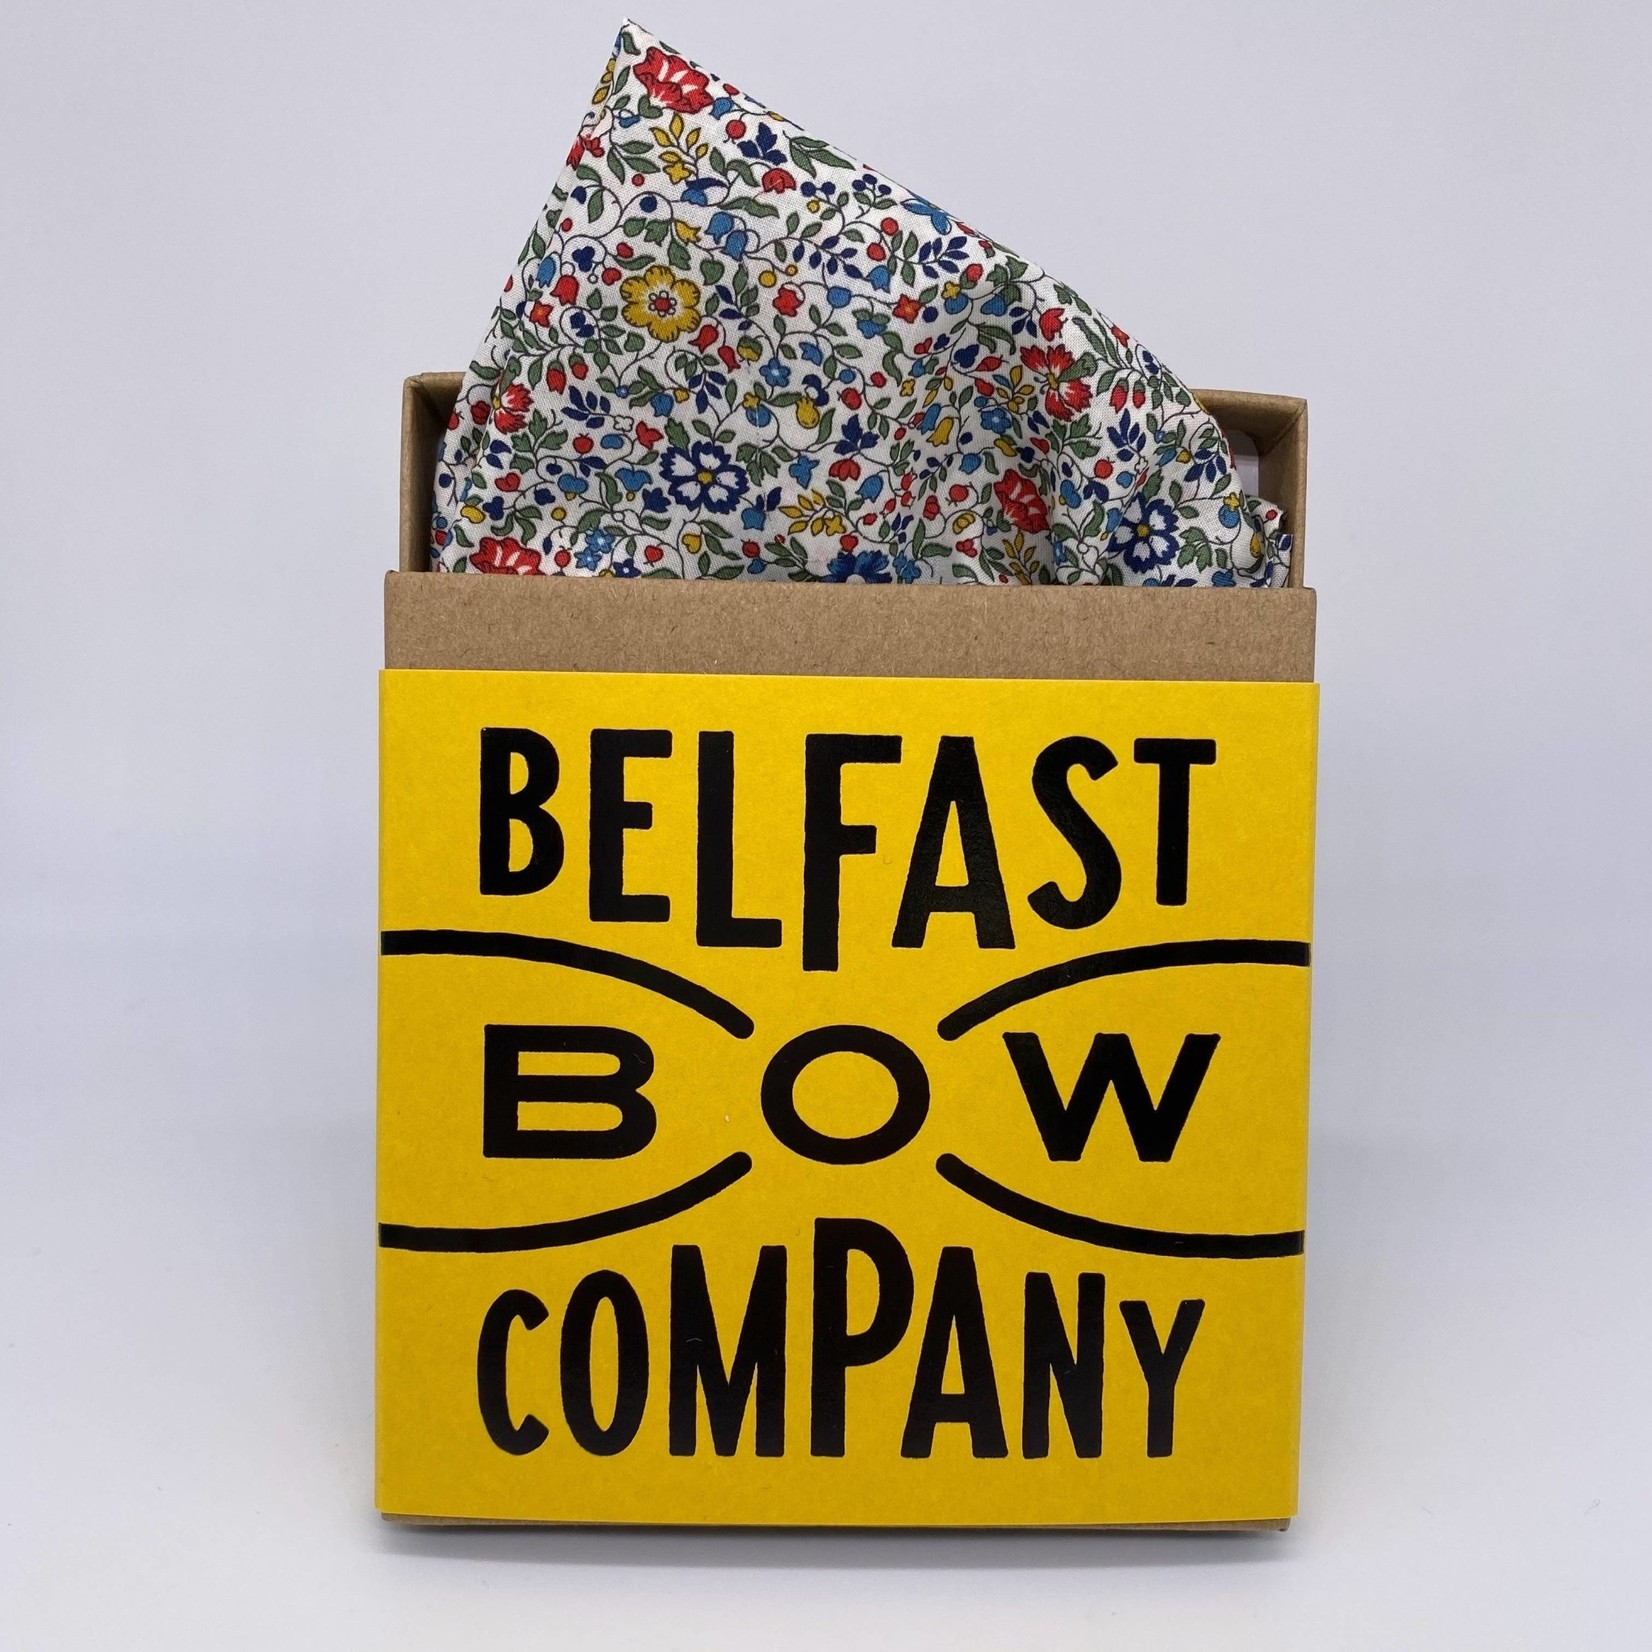 Belfast Bow Company Pocket Square in Liberty of London Multi Ditsy Floral